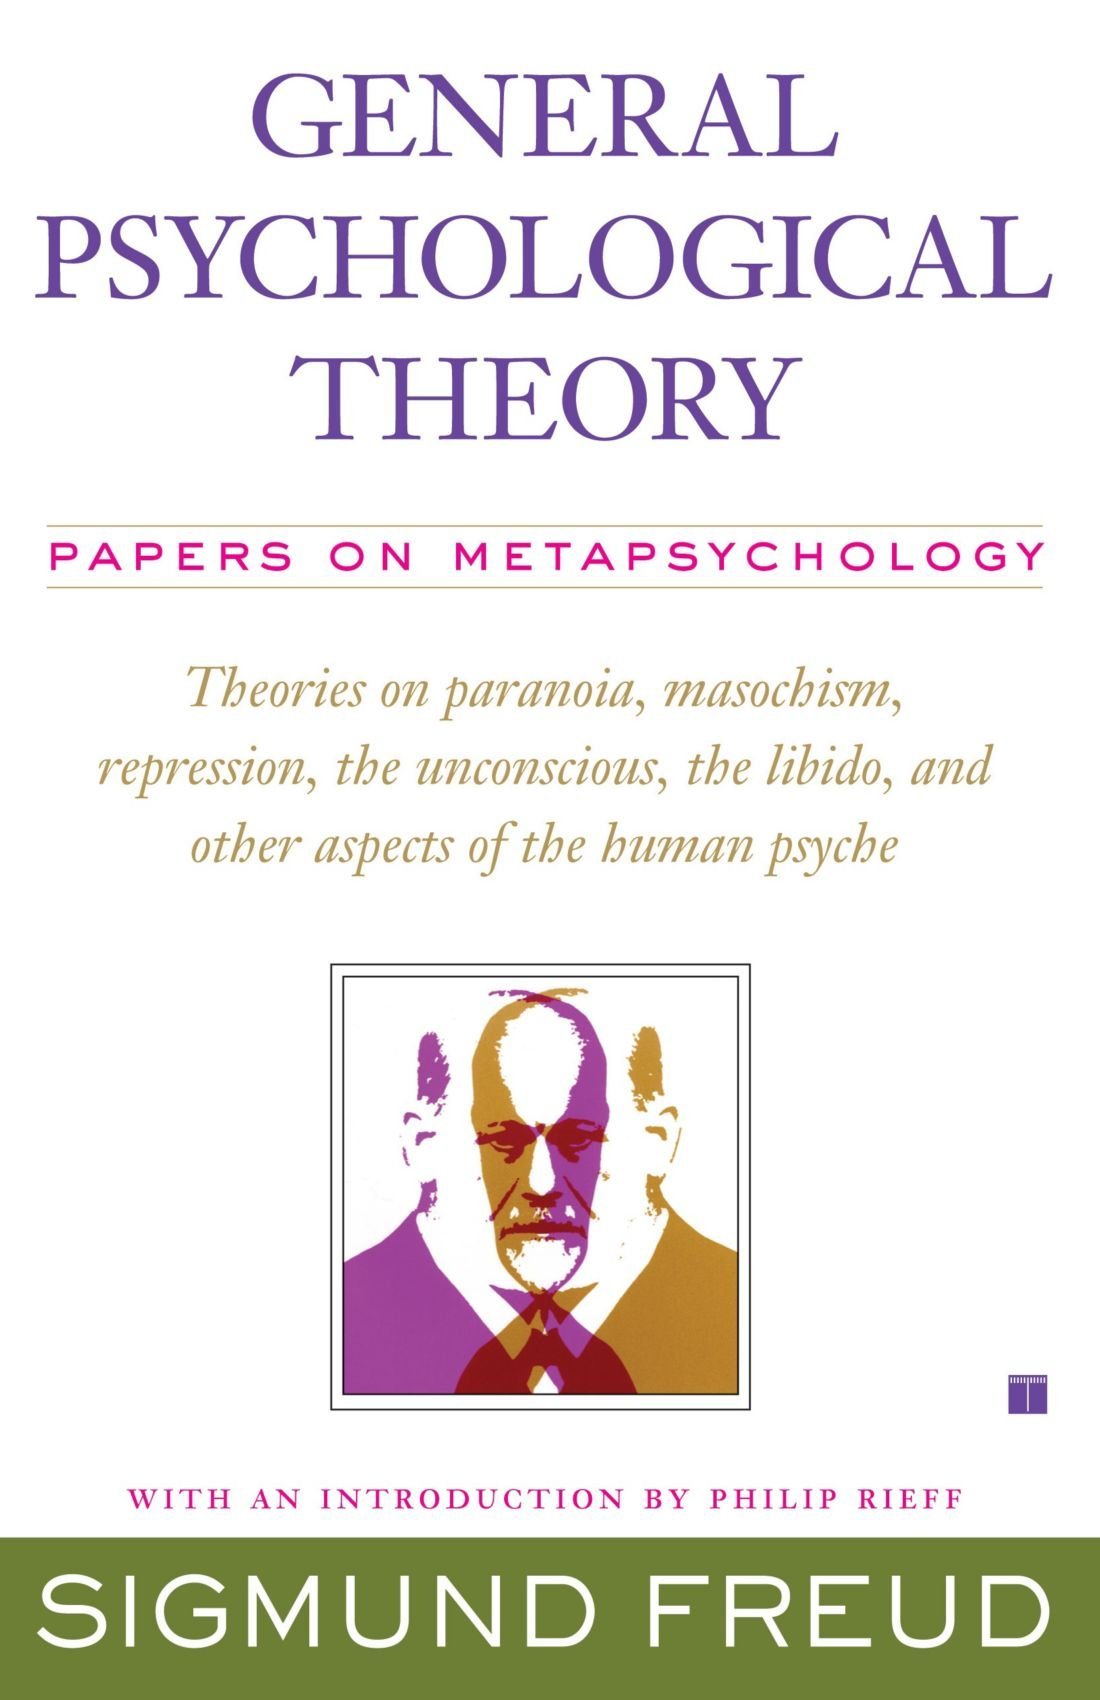 general psychological theory papers on metapsychology the  general psychological theory papers on metapsychology the collected papers of sigmund freud sigmund freud 9781416573593 com books